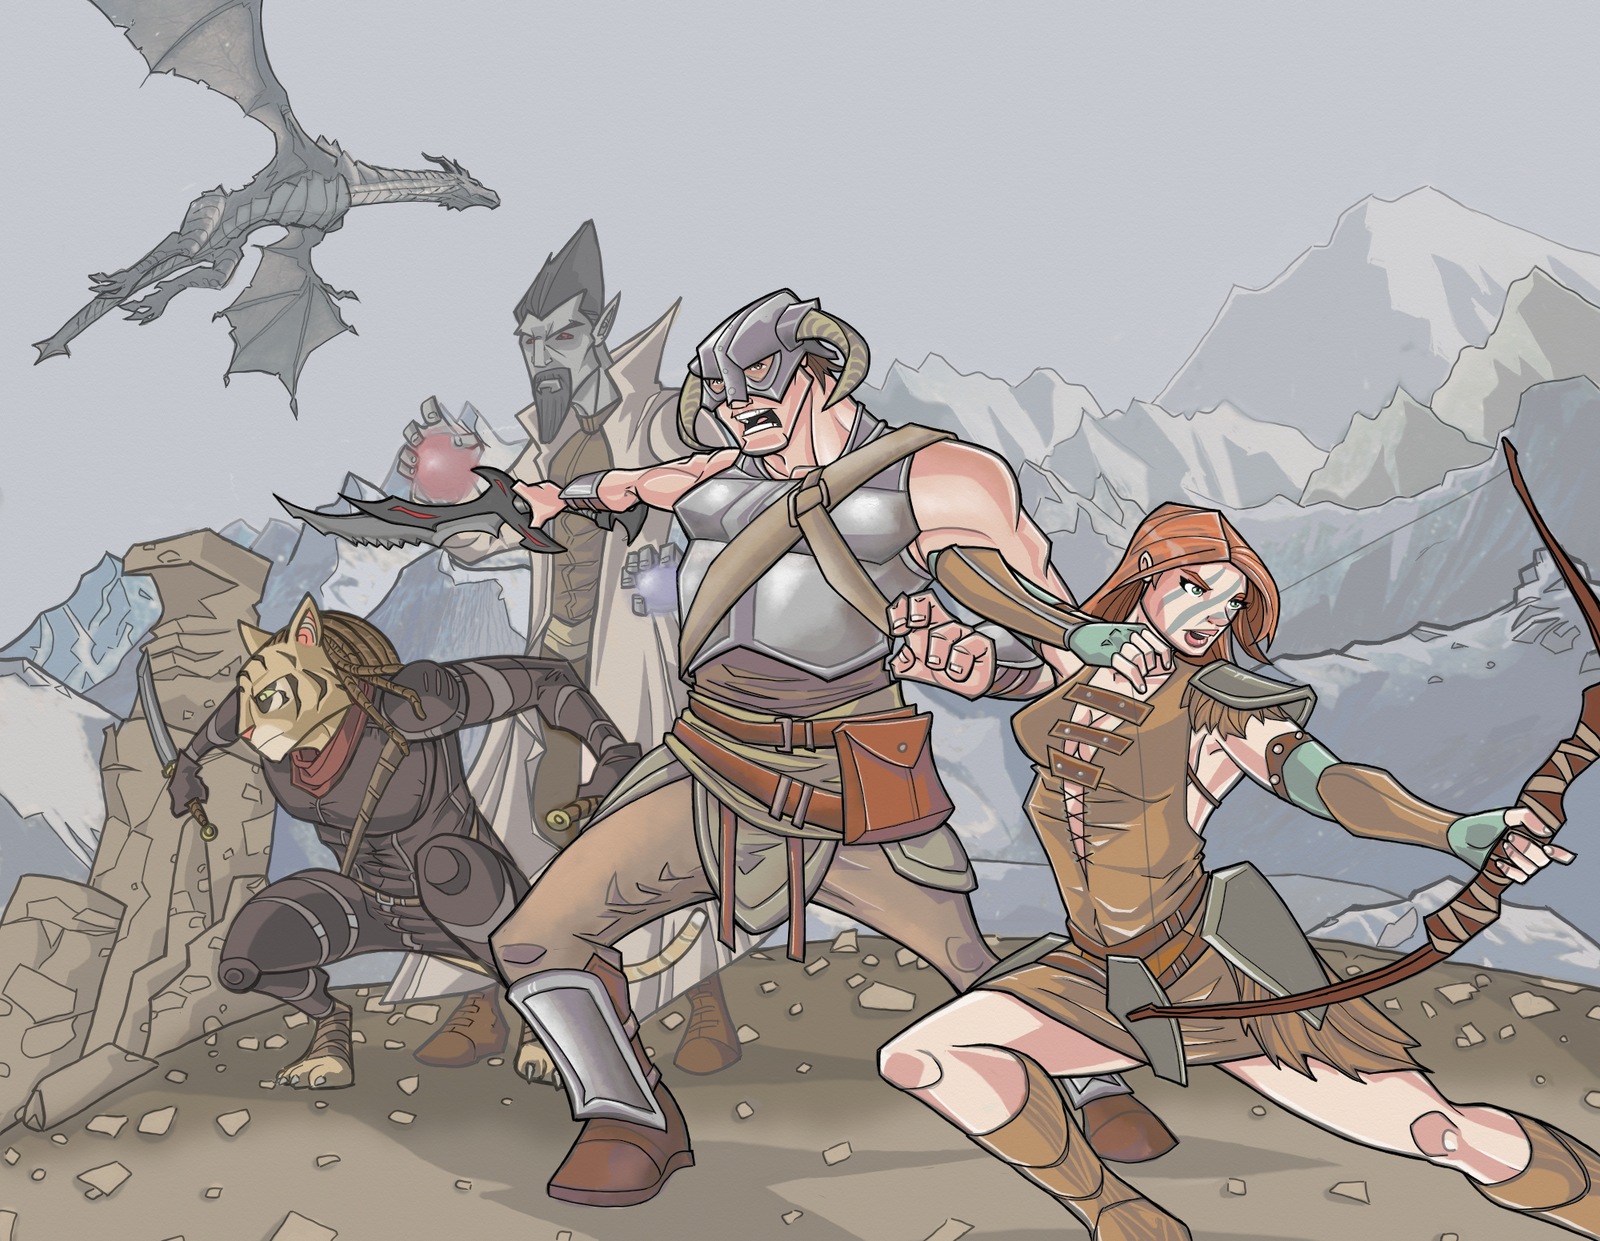 Skyrim in full-color by davidstonecipher